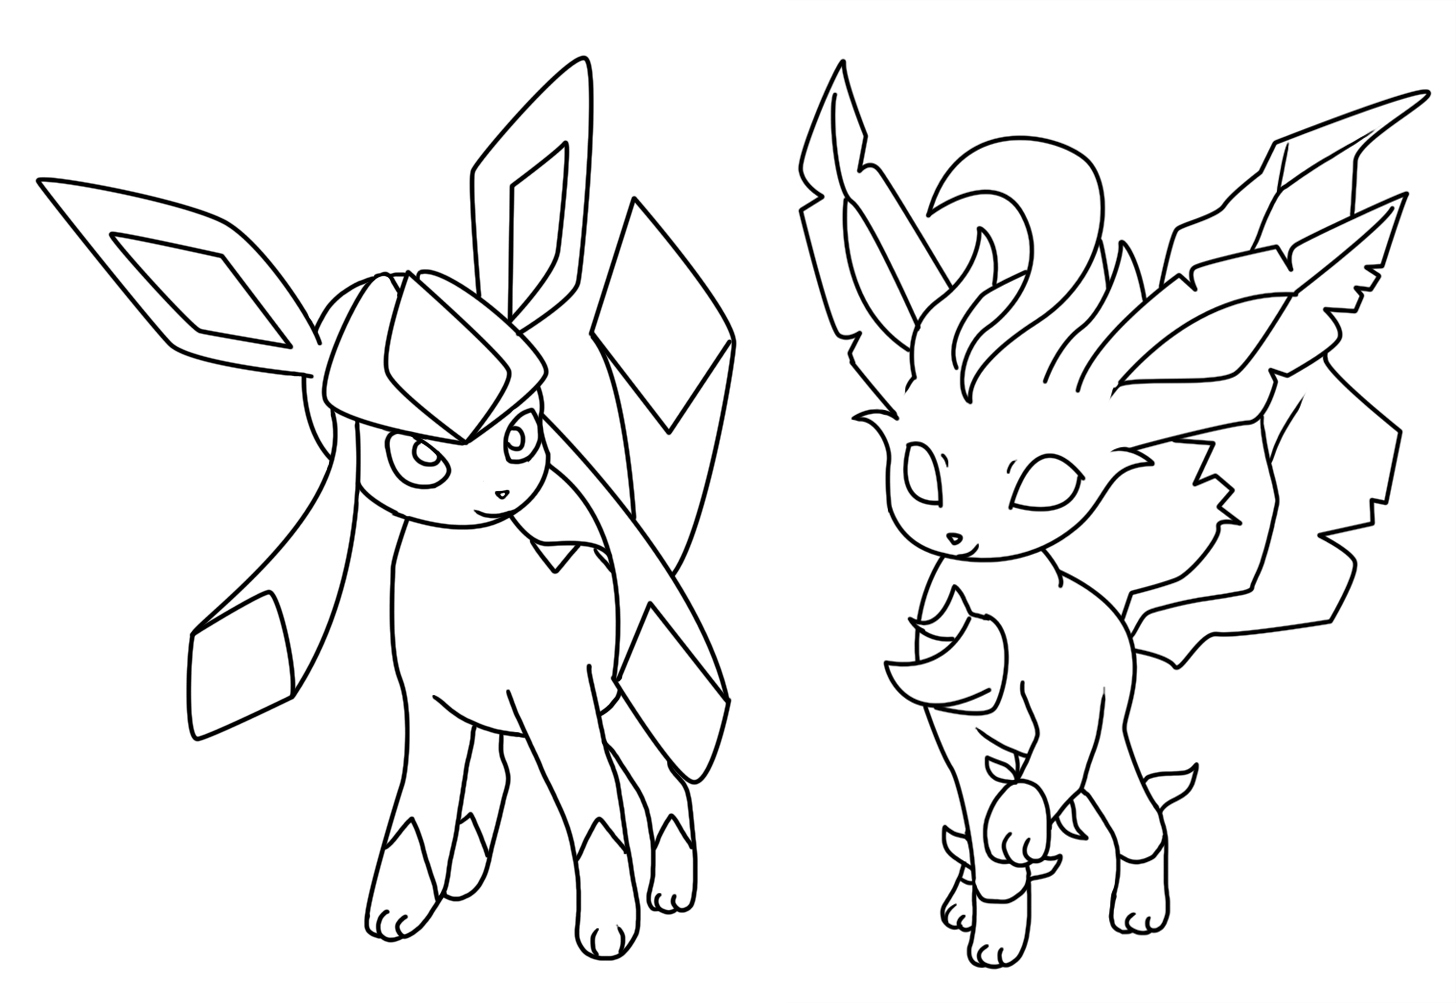 leafeon coloring pages - photo#17